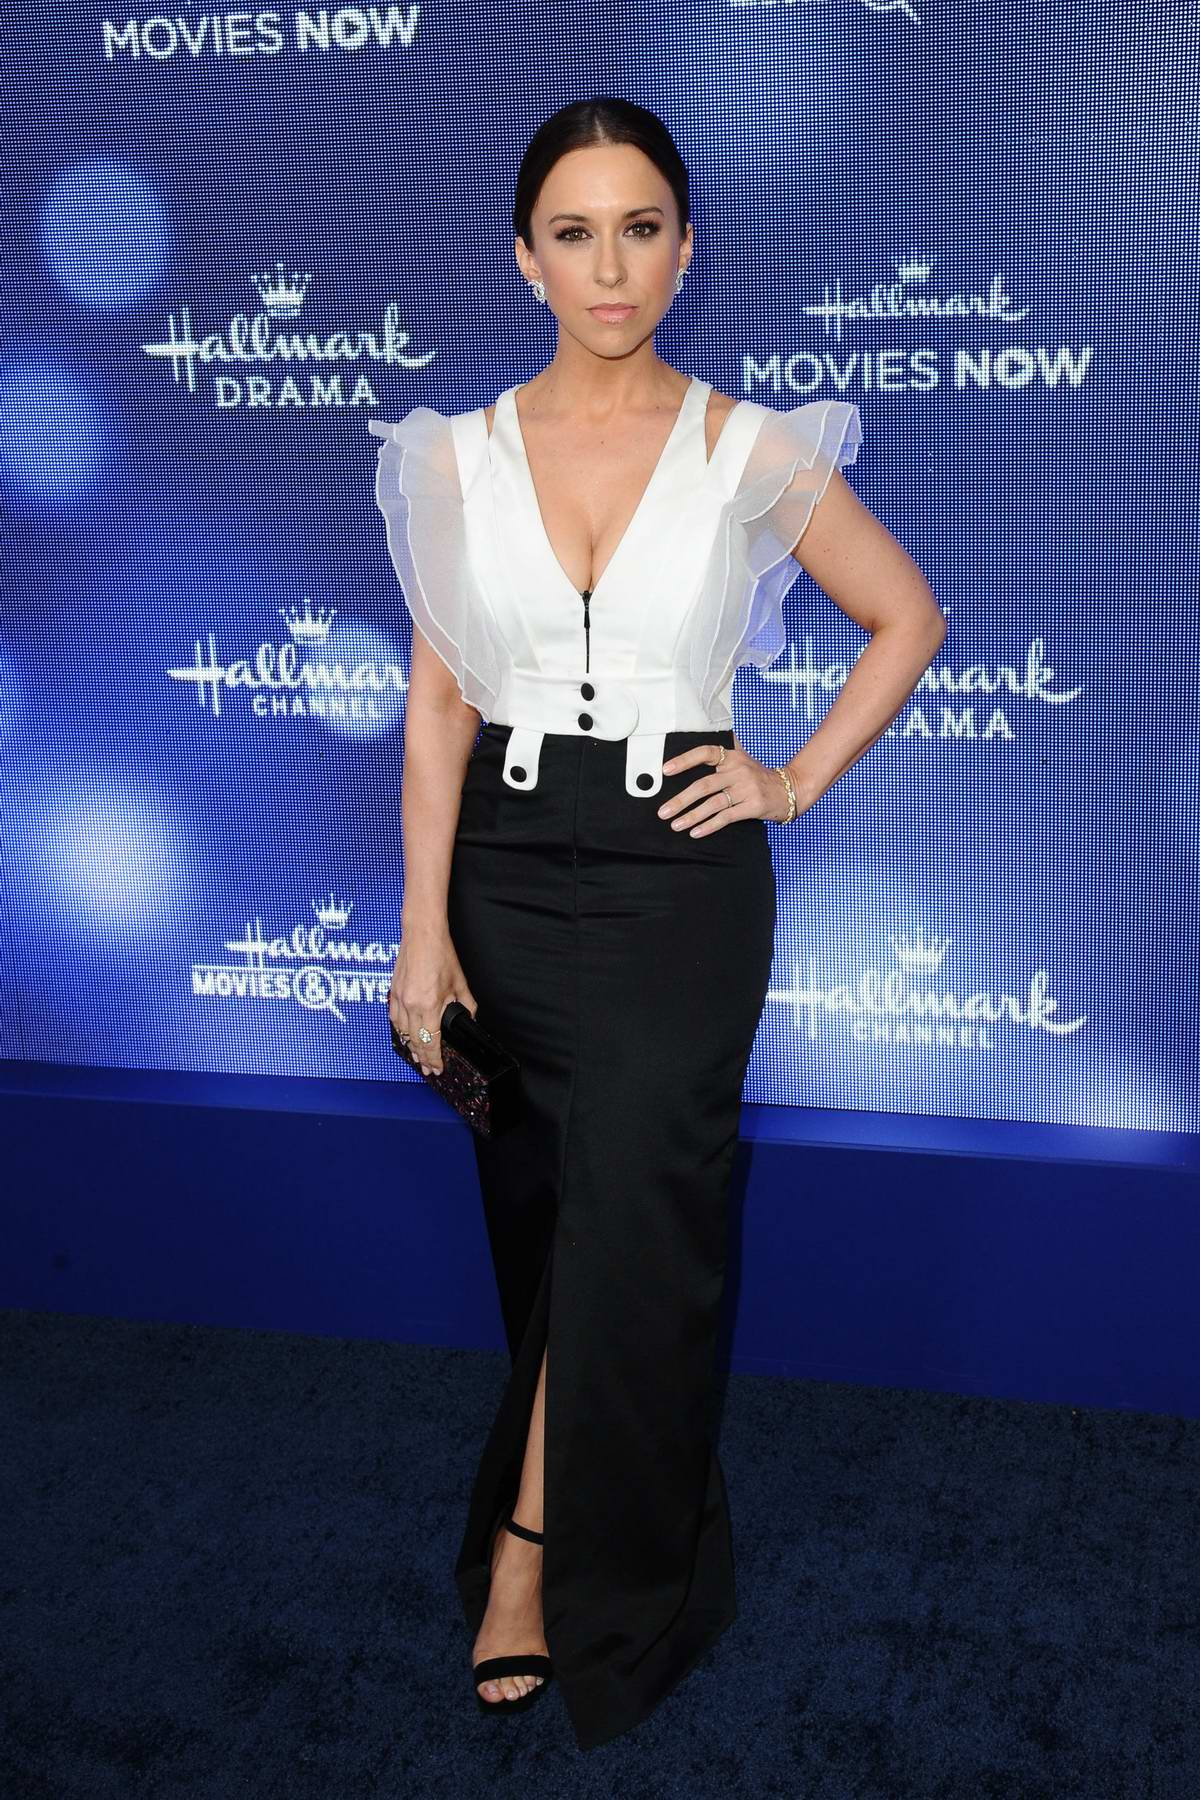 Lacey Chabert attends Hallmark Movies & Mysteries Summer TCA Press Tour Event in Beverly Hills, Los Angeles